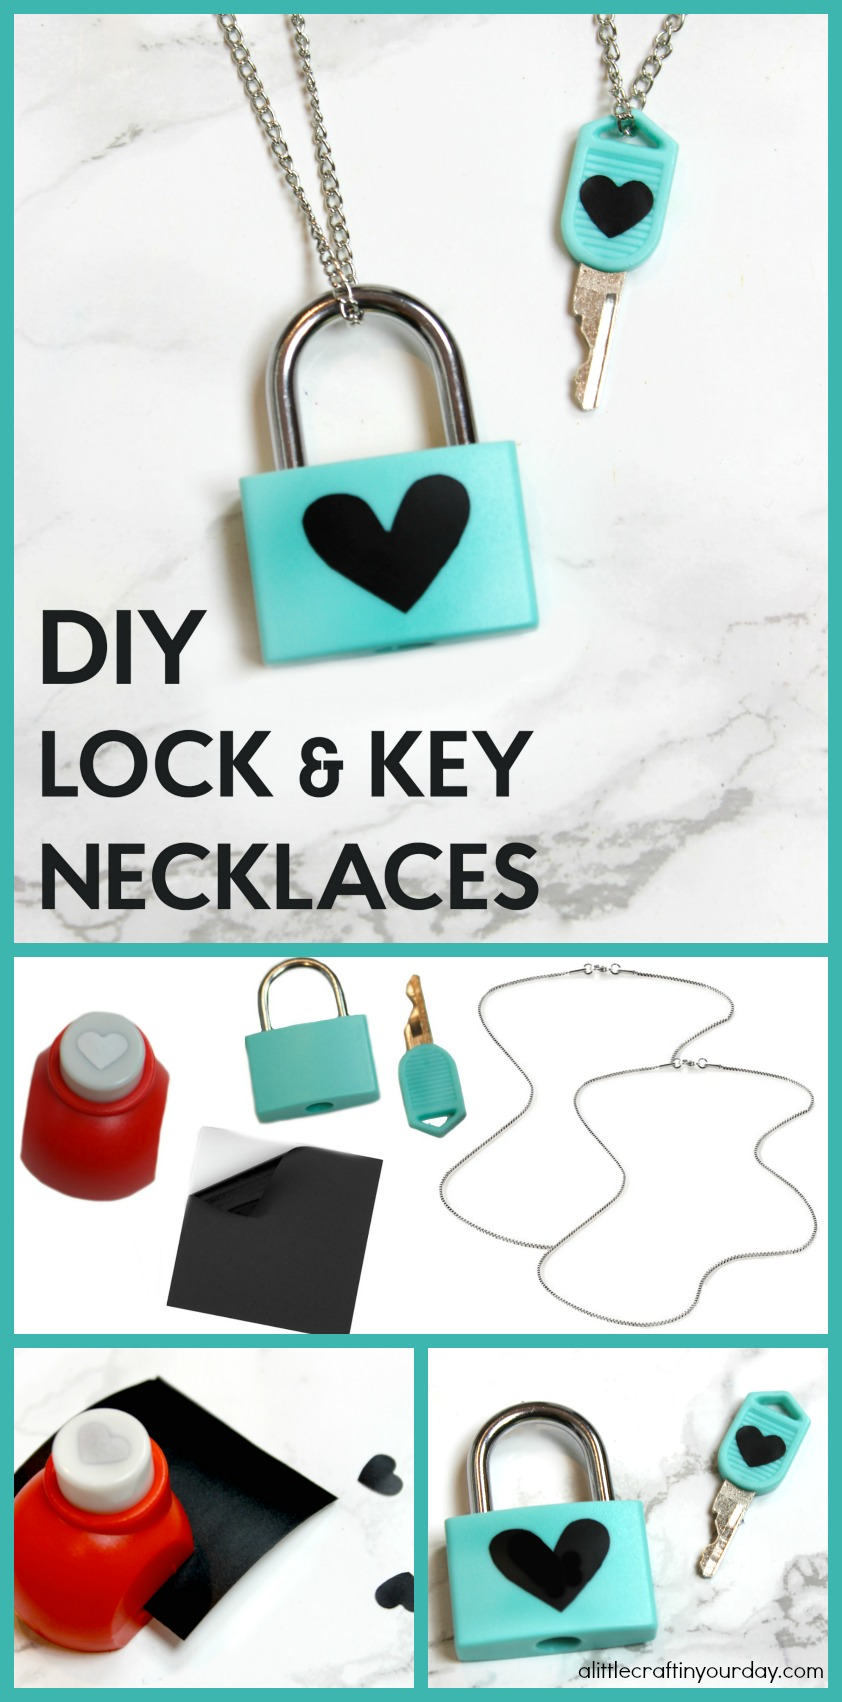 DIY_Lock_&_Key_Necklaces